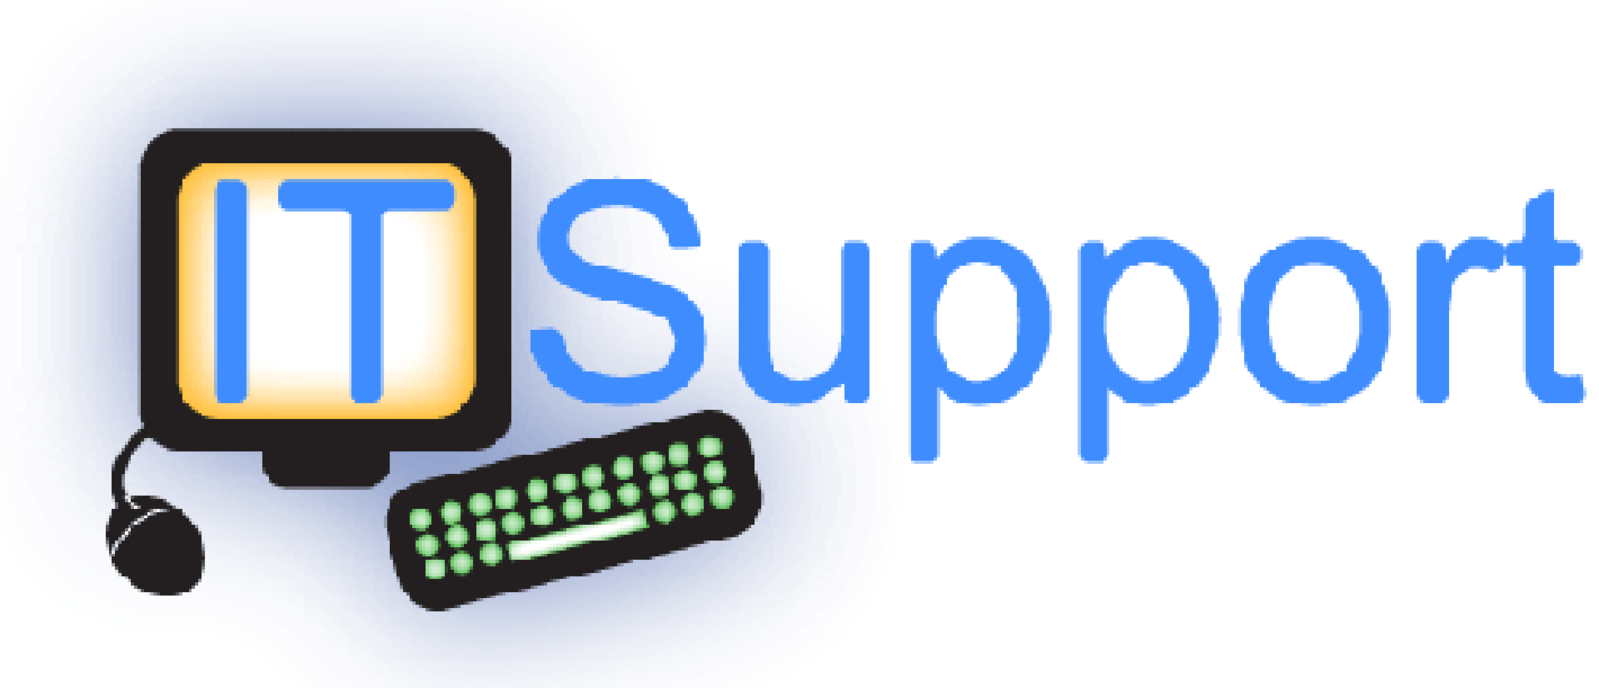 Free ITsupport Stock Photo - FreeImages.com